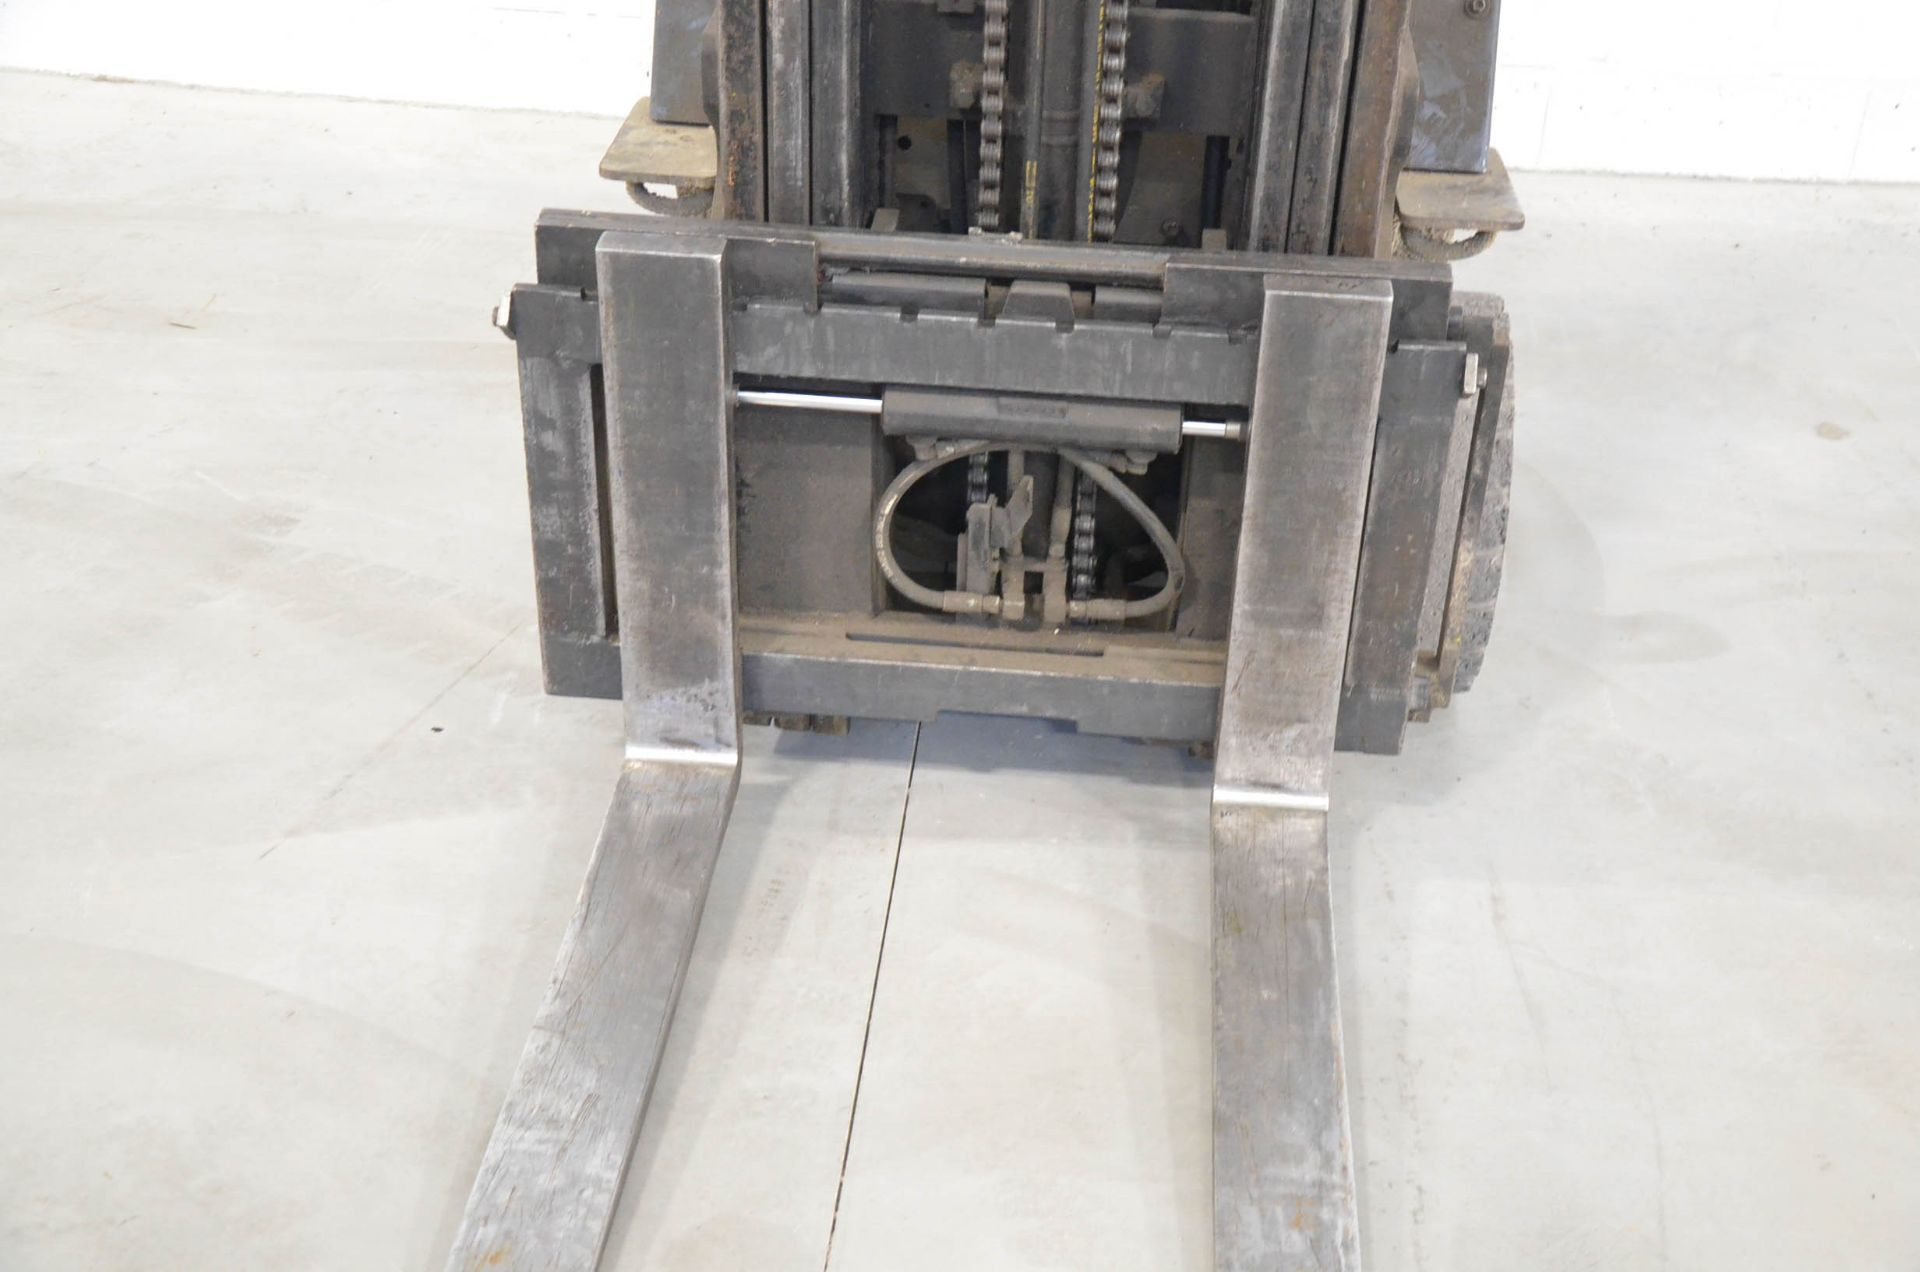 """TOYOTA 42-6FGCU30 4,750LB CAPACITY LPG FORKLIFT WITH 187"""" MAX. VERTICAL REACH, SIDE-SHIFT, CUSHION - Image 3 of 4"""